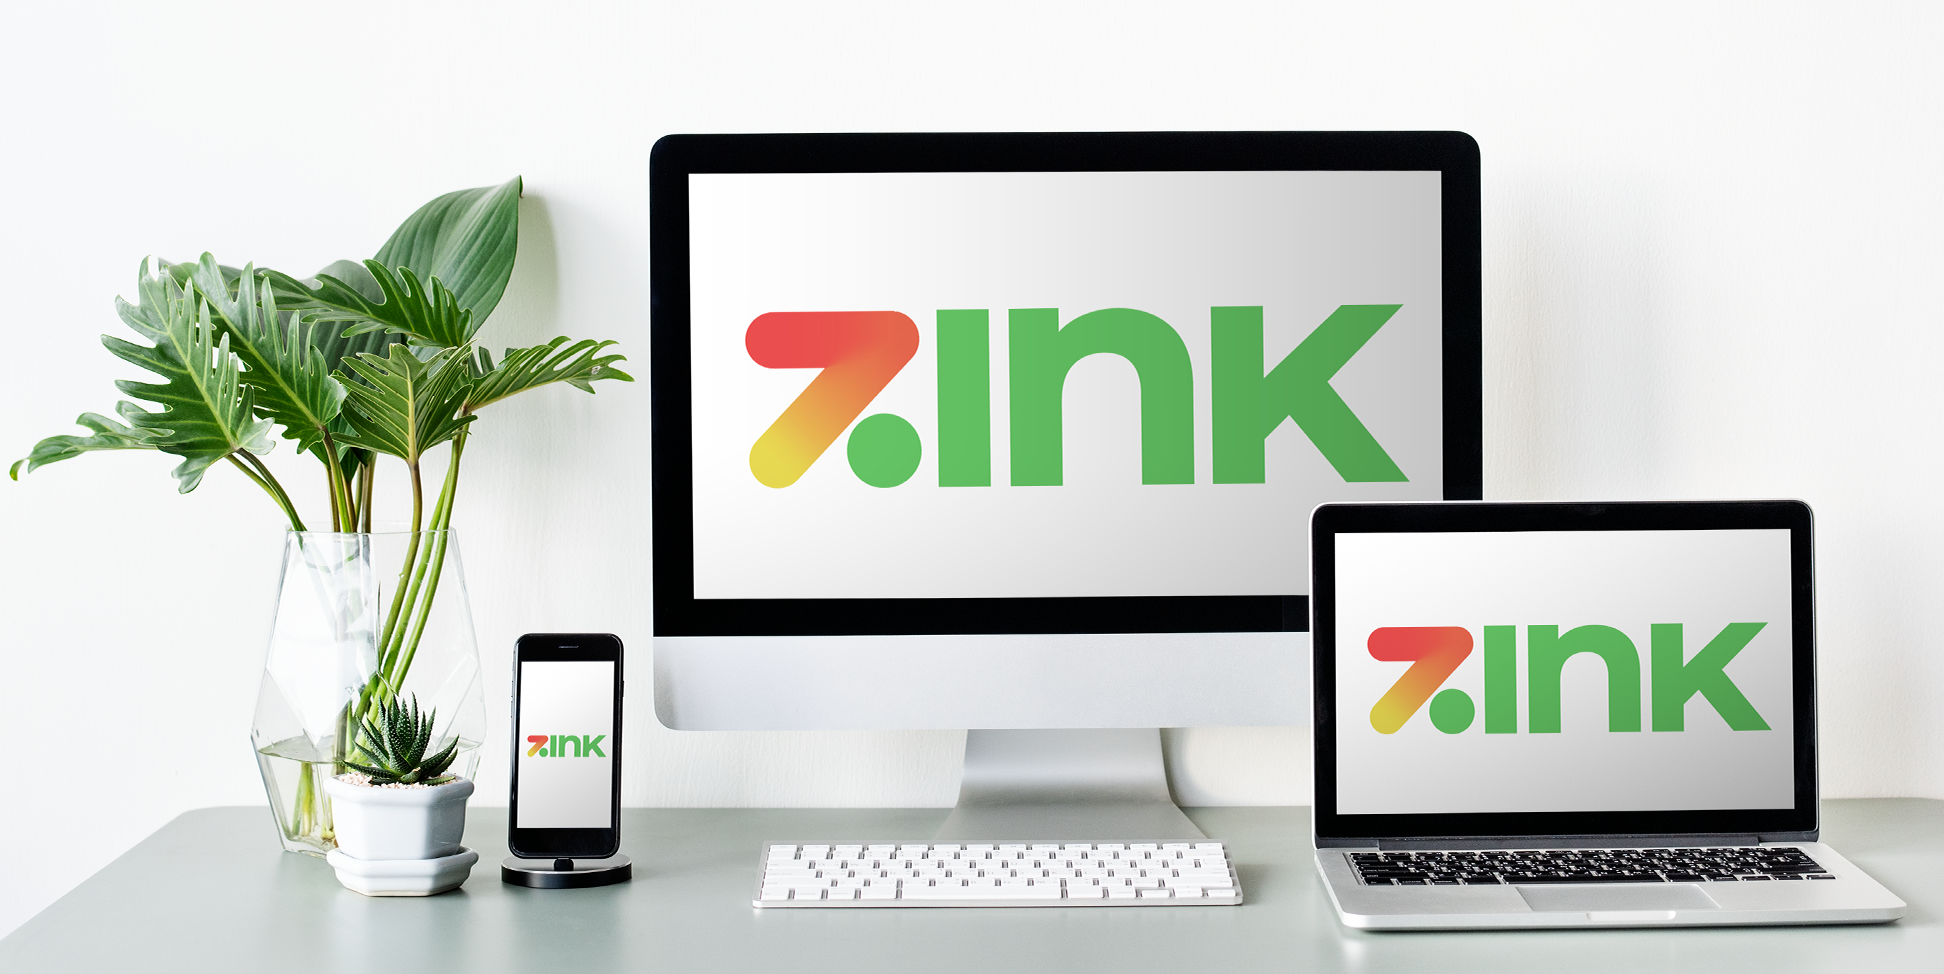 Zink-asset-finance-aggregator-software-for-brokers. 2